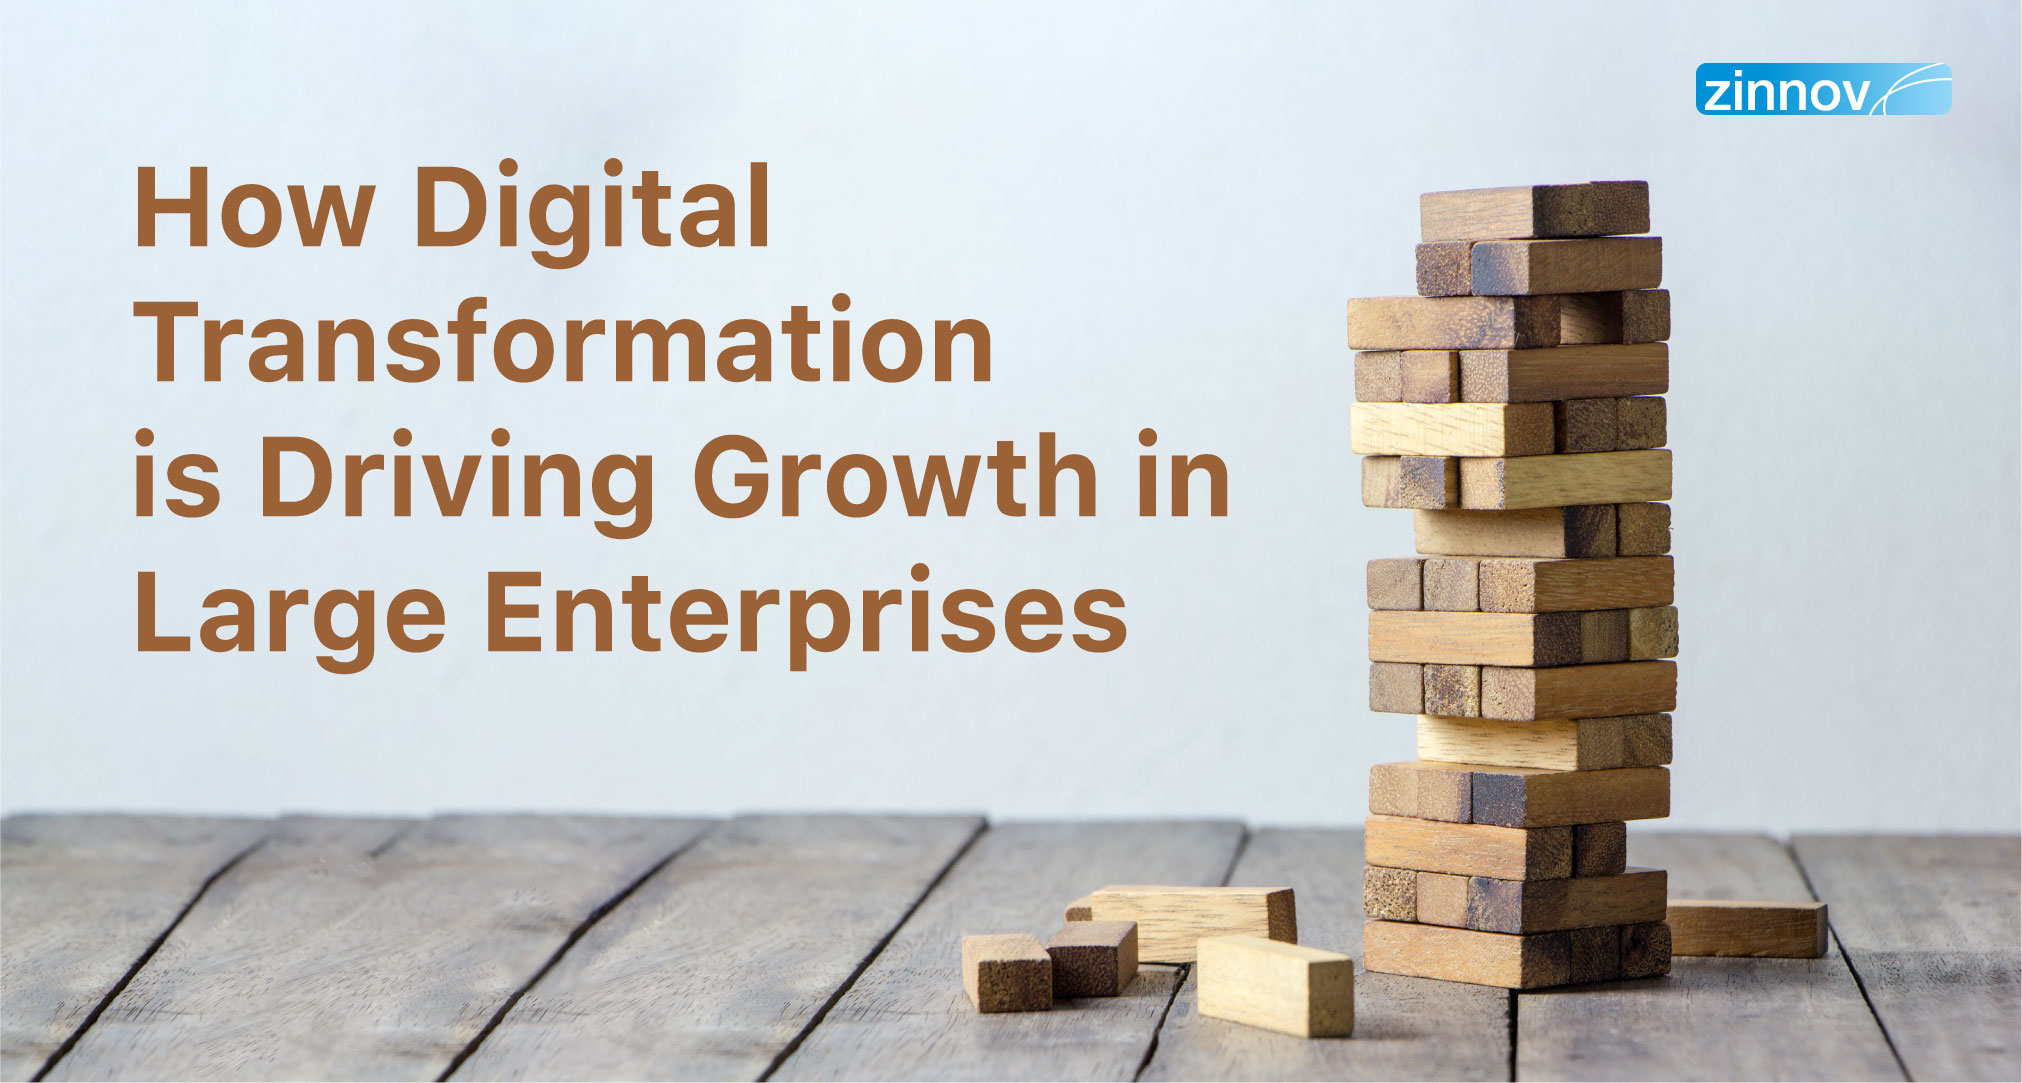 Digital Transformation in Large Enterprises